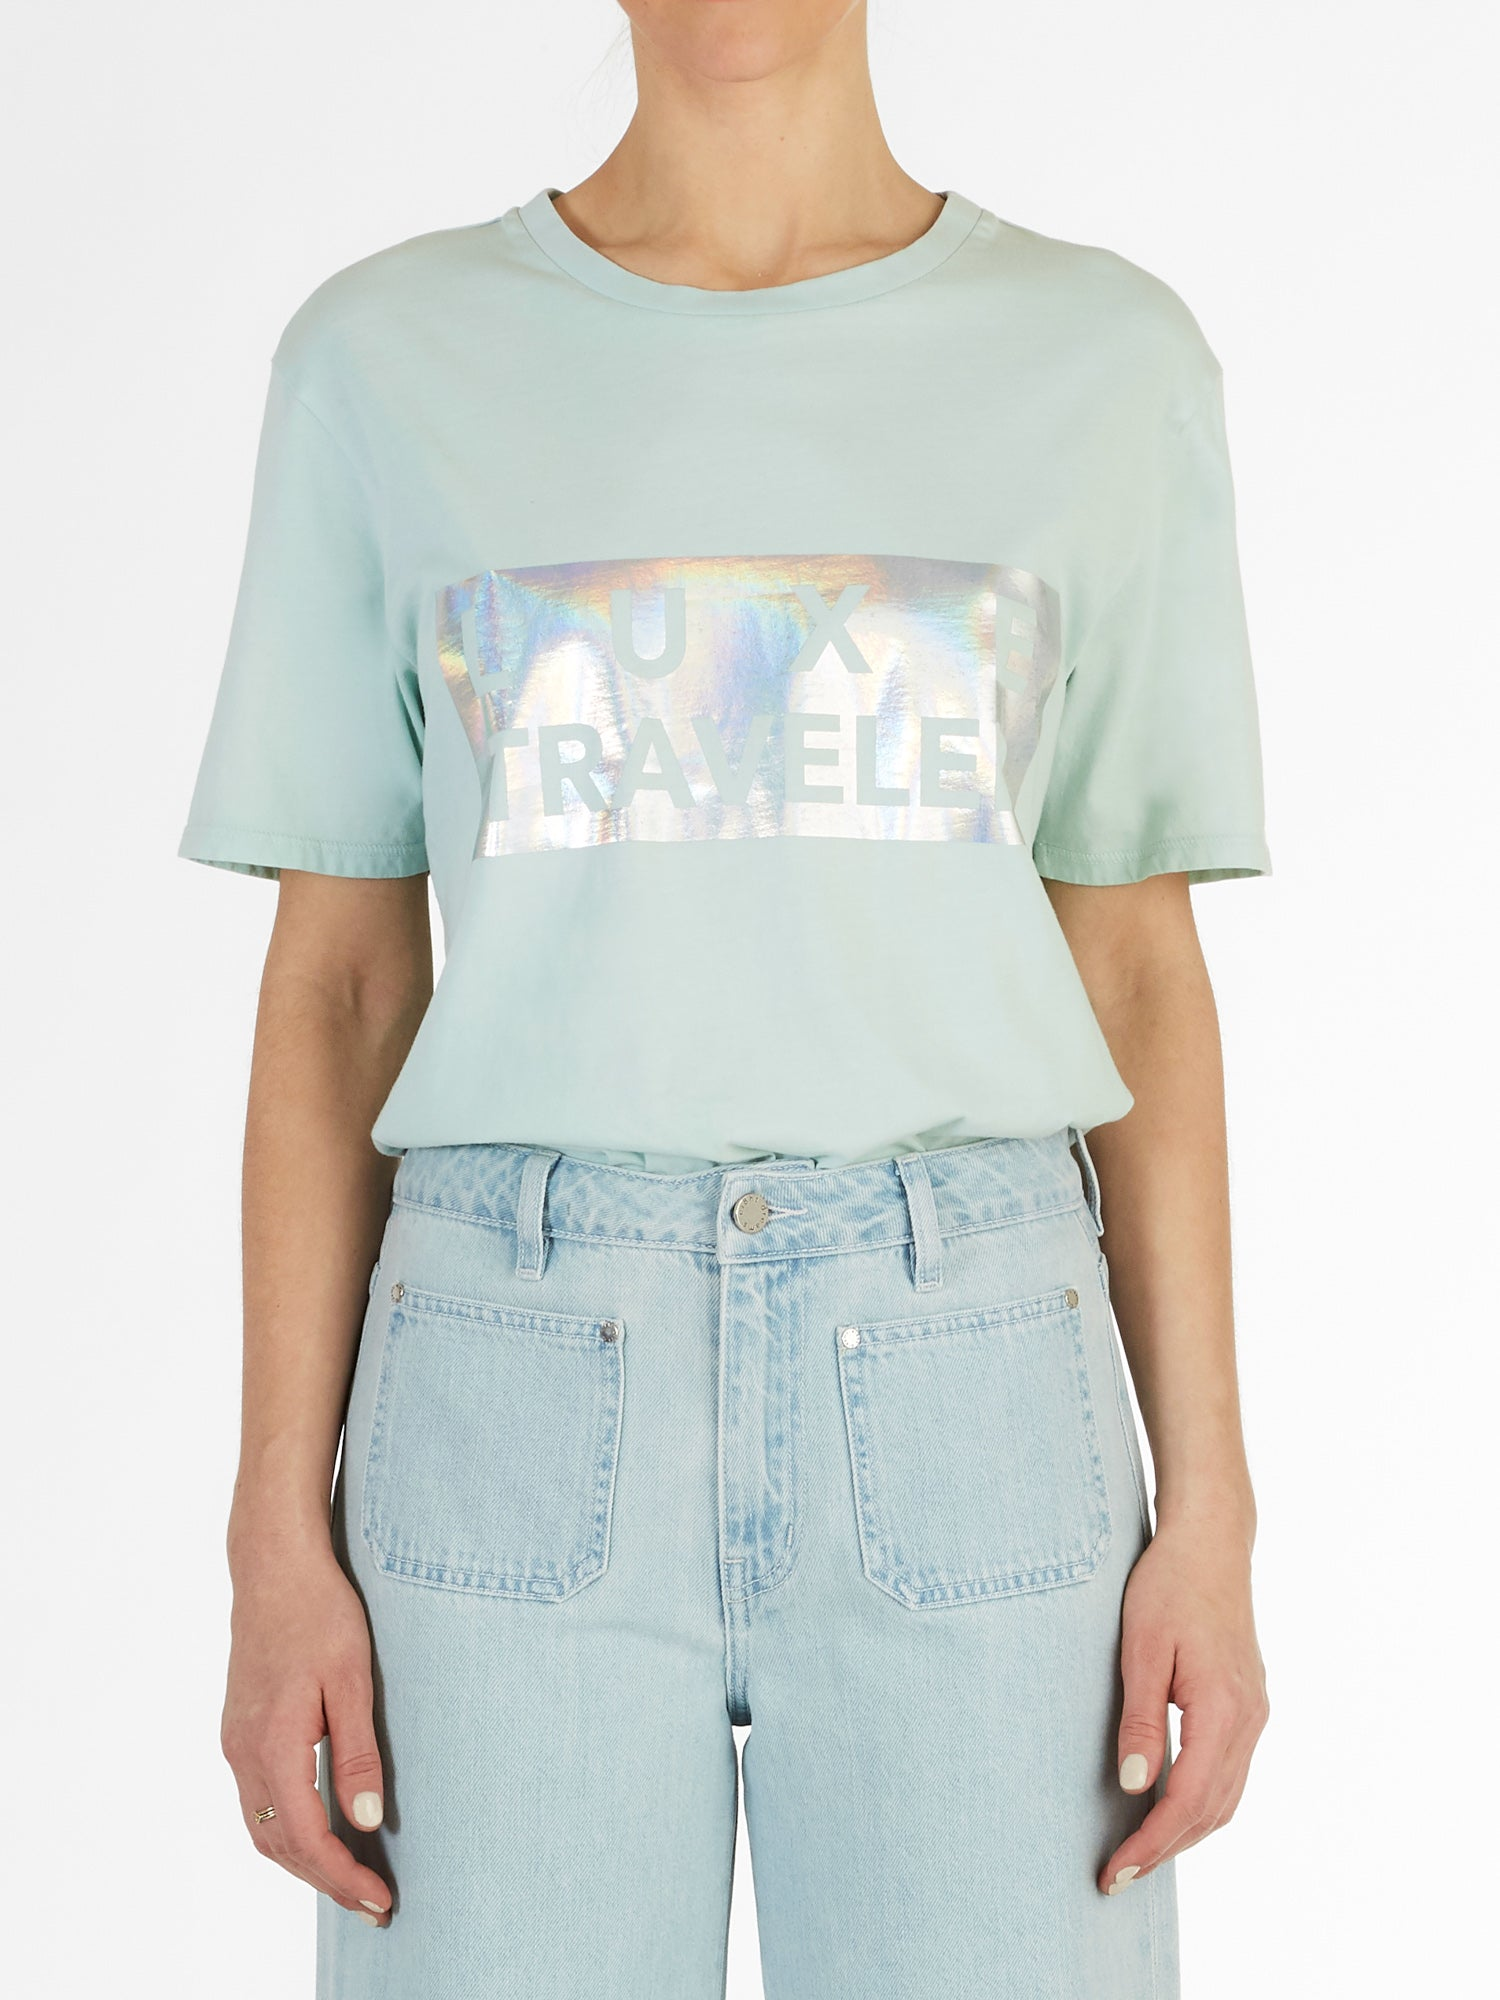 Luxe Traveler Boyfriend Tee in Mint Green Italian Cotton Jersey